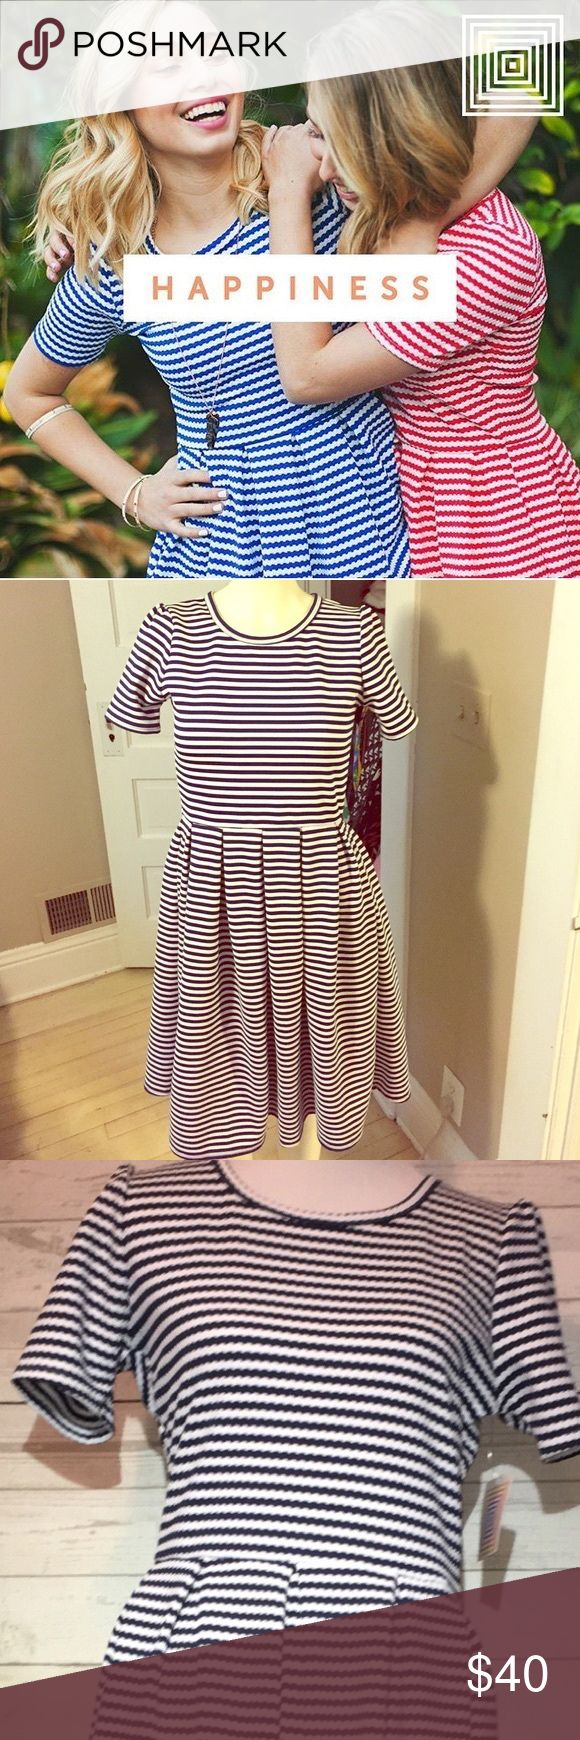 "🦄LulaRoe Amelia blue & white dress🦄 Blue and white Amelia dress. Has two front side pockets in the skirt. Has six pleats at the skirt which give it shape and structure. Has a crew neckline. Zips up the black, zipper goes into the skirt. Dress measures 33"" sleeves measures 81/2""and the skirt measures 22"" no odors. Bookmark me @kujijoy thanks for looking! LuLaRoe Dresses Midi"